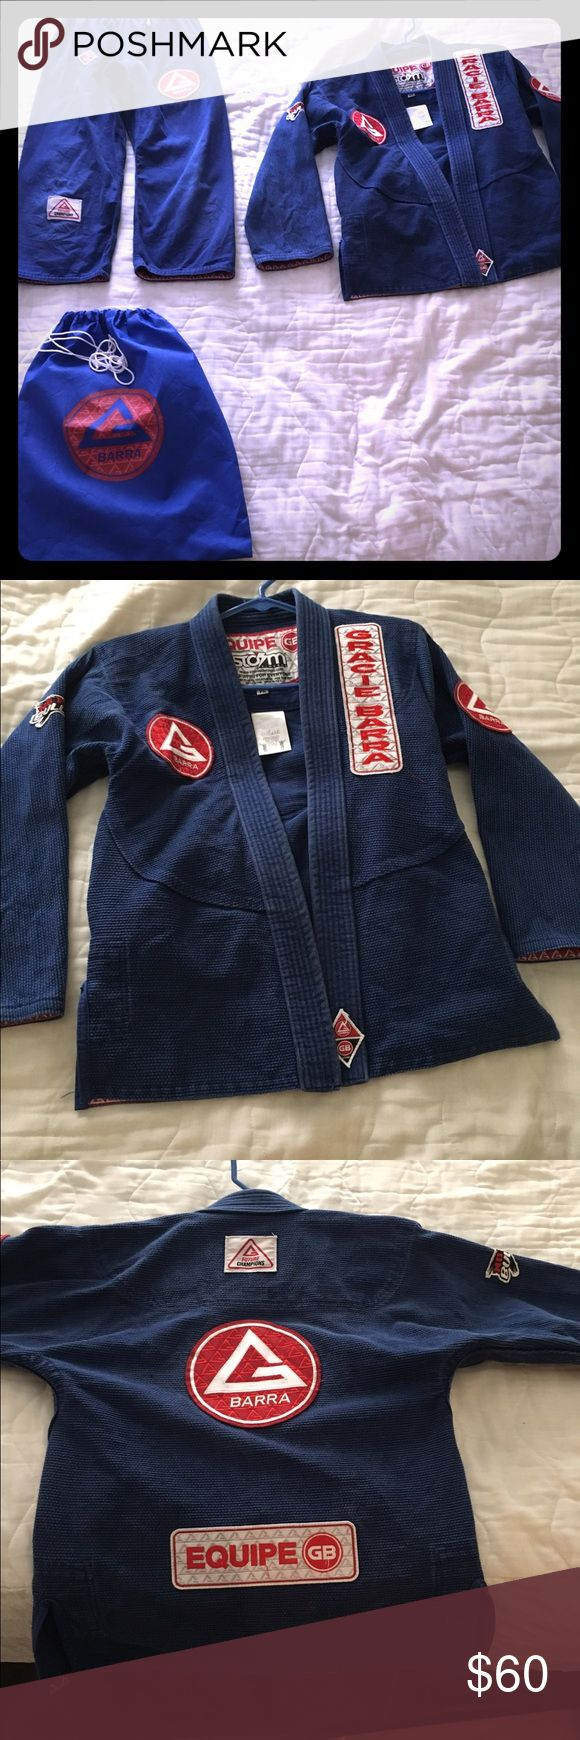 Gracie Barra Jiujitsu Gi (Youth Size 5) Gracie Barra Jiujitsu Gi (Youth Size 5)  in Blue. Worn but lots of life left. No rips or tears just discolored from washing. My son outgrew this too fast. Gracie Barra Other